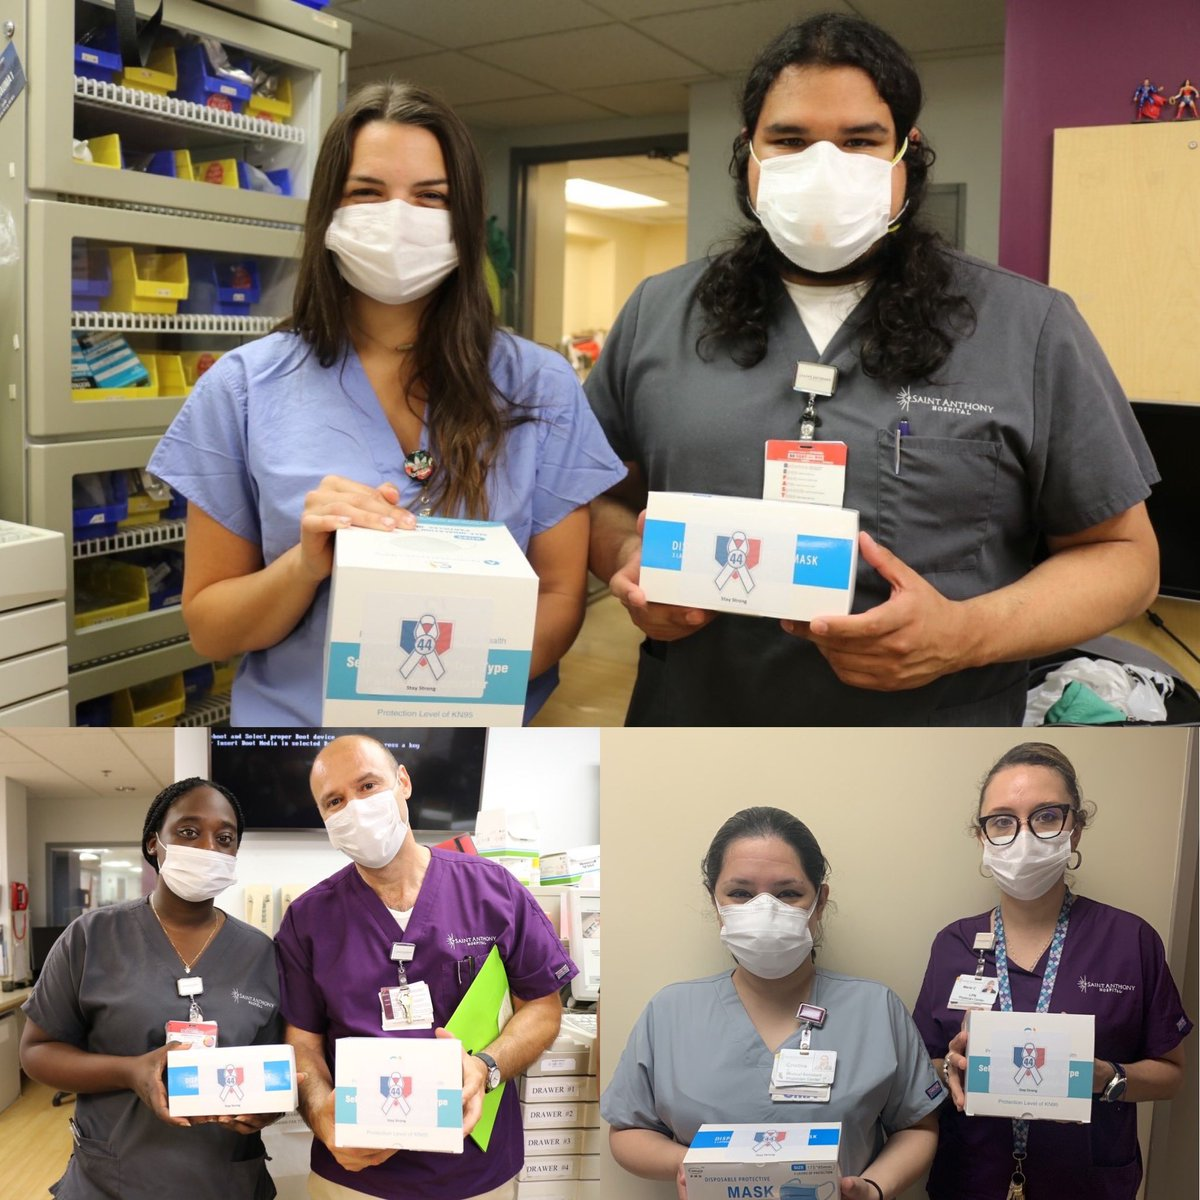 We are proud to support Saint Anthonys with the delivery of KN95 and 3 ply surgical masks. Saint Anthony Hospital is an independent, nonprofit hospital serving the West Side and Southwest Side of Chicago. Thank you for all the work you are doing to keep our loved ones safe. ❤️